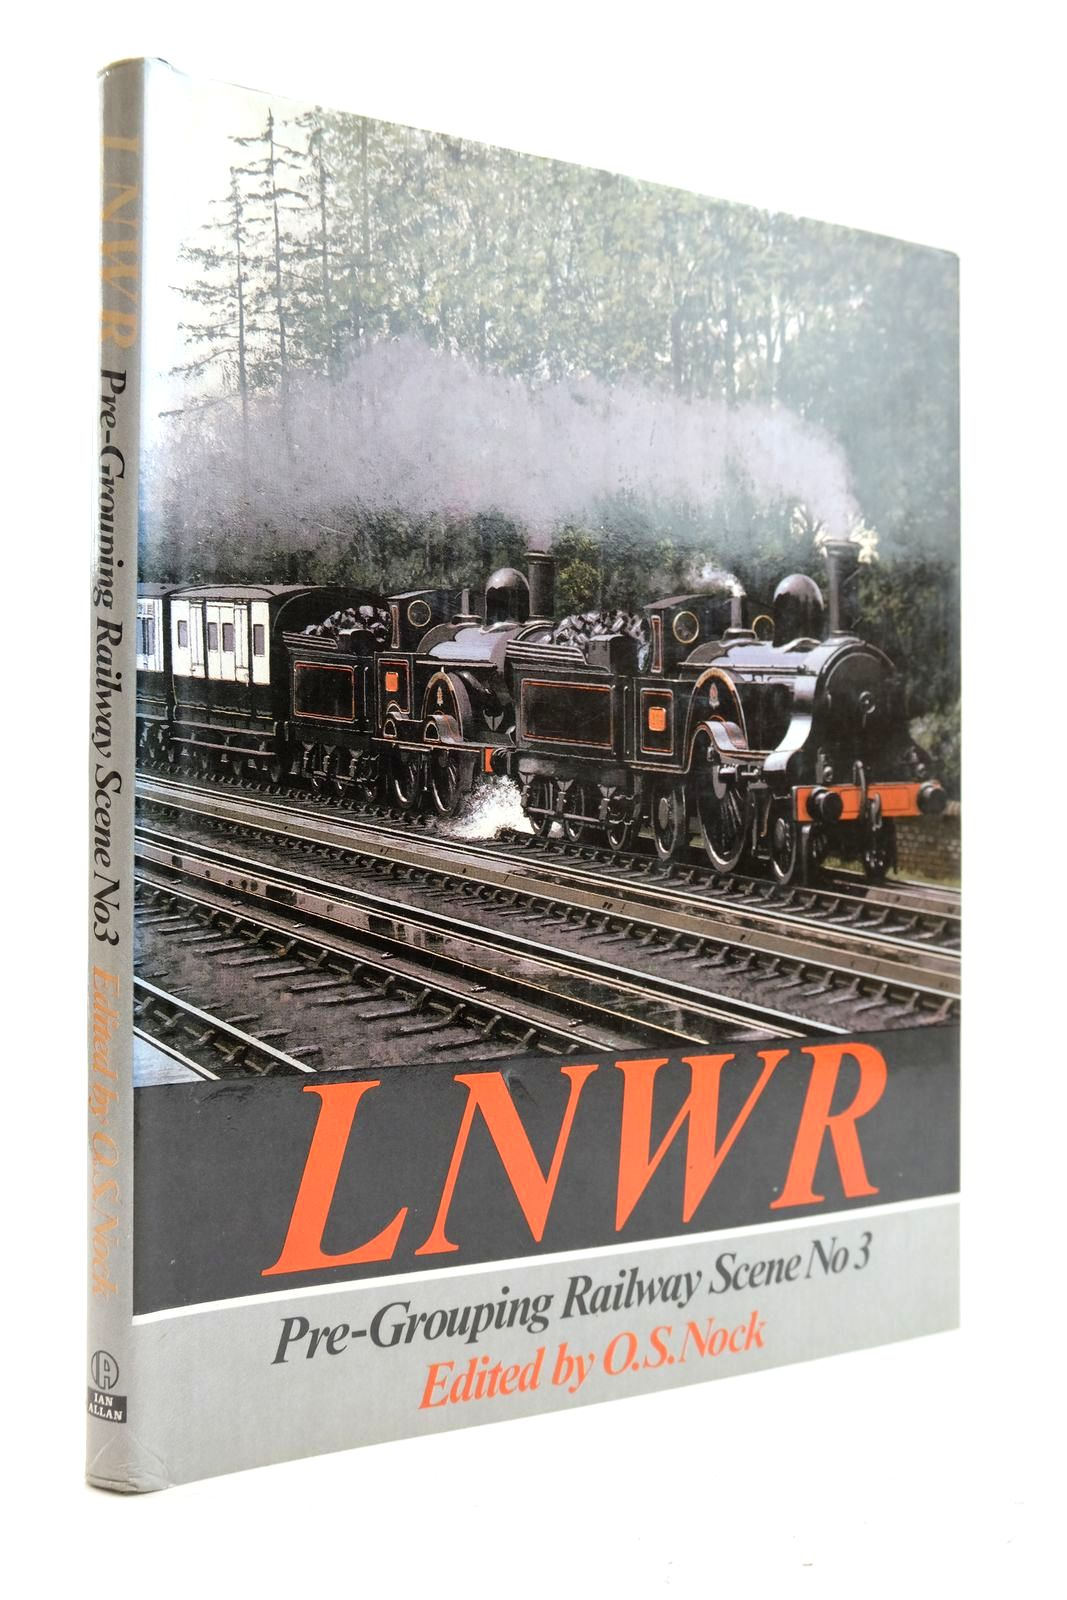 Photo of LNWR PRE-GROUPING RAILWAY SCENE No. 3- Stock Number: 2133107